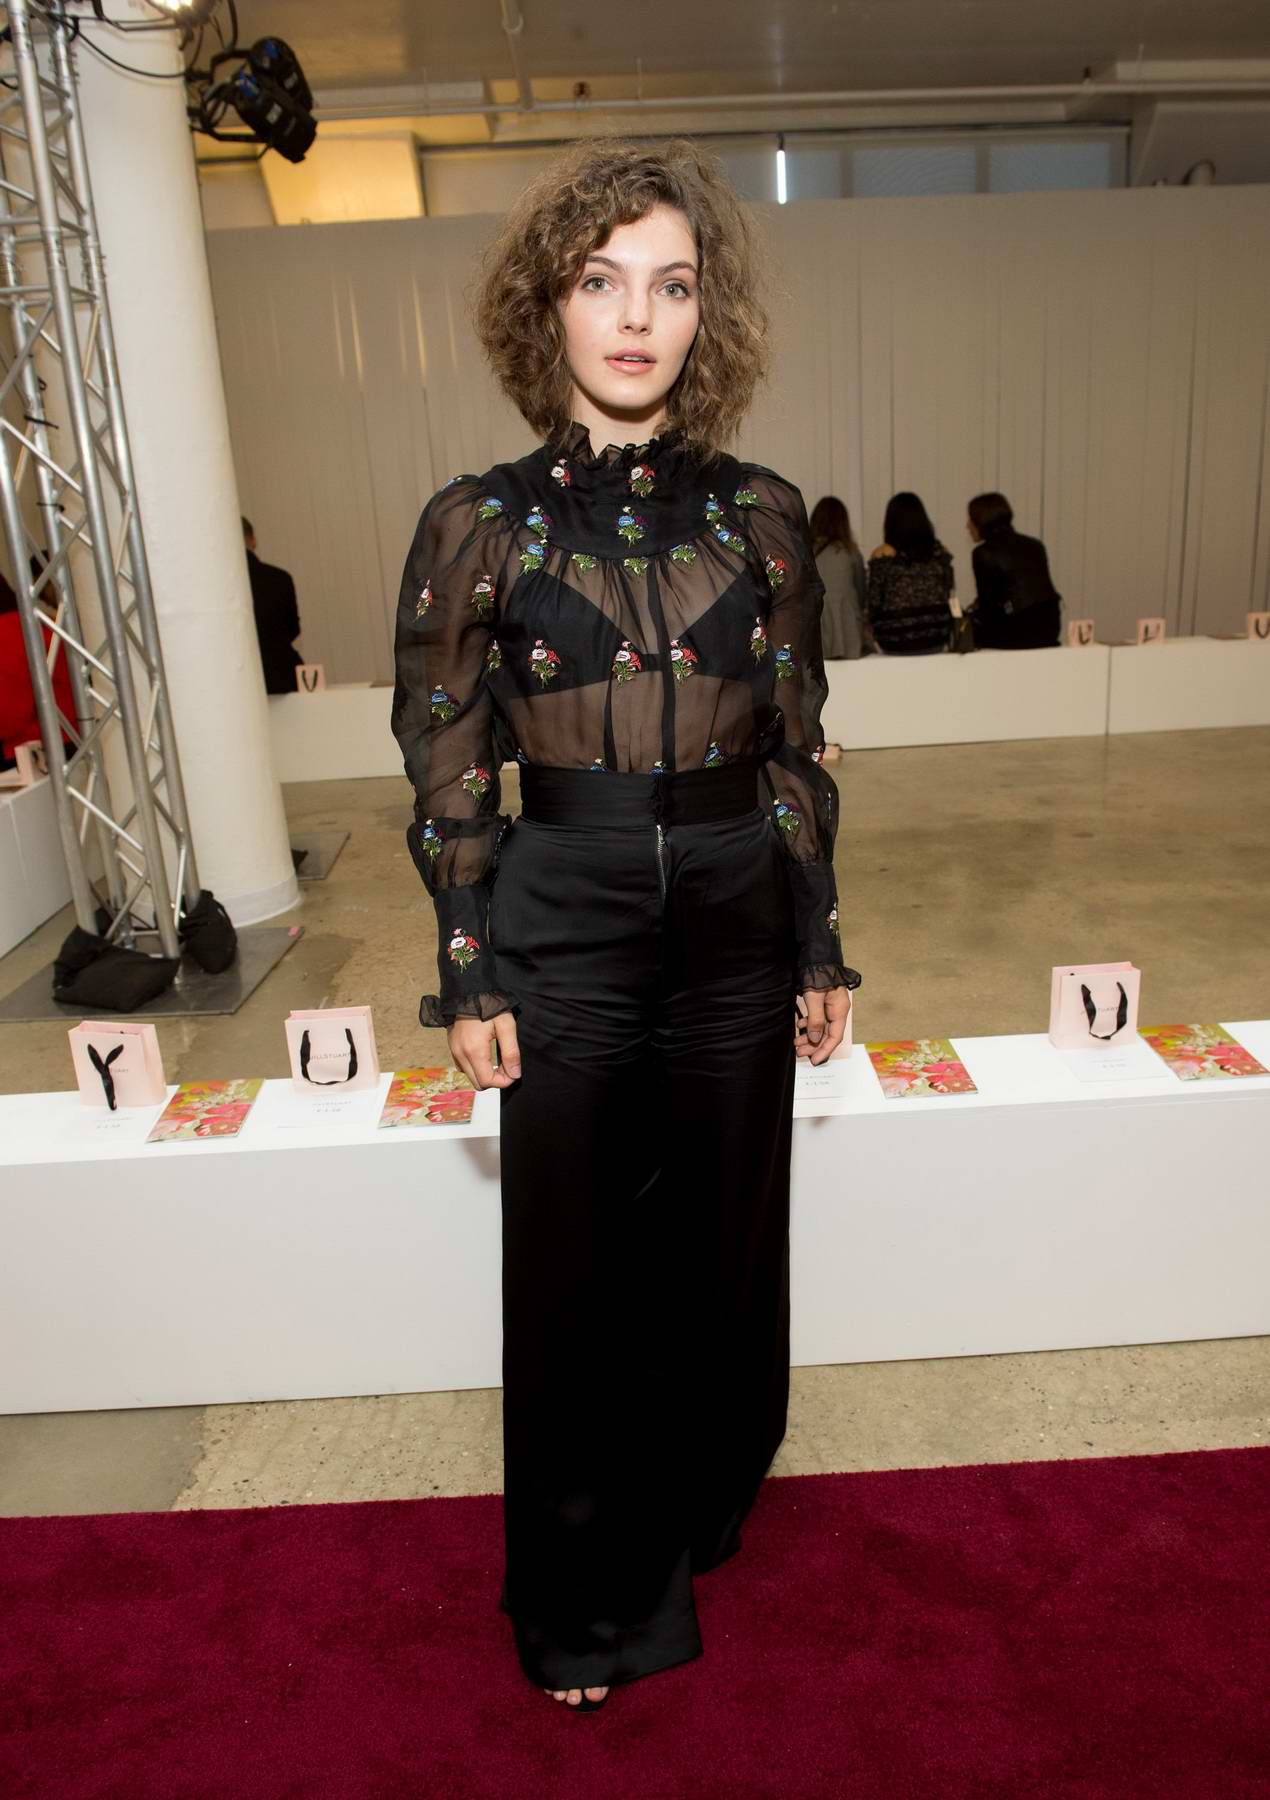 Camren Bicondova at the Jill Stuart Show, spring summer 2018 during New York Fashion Week